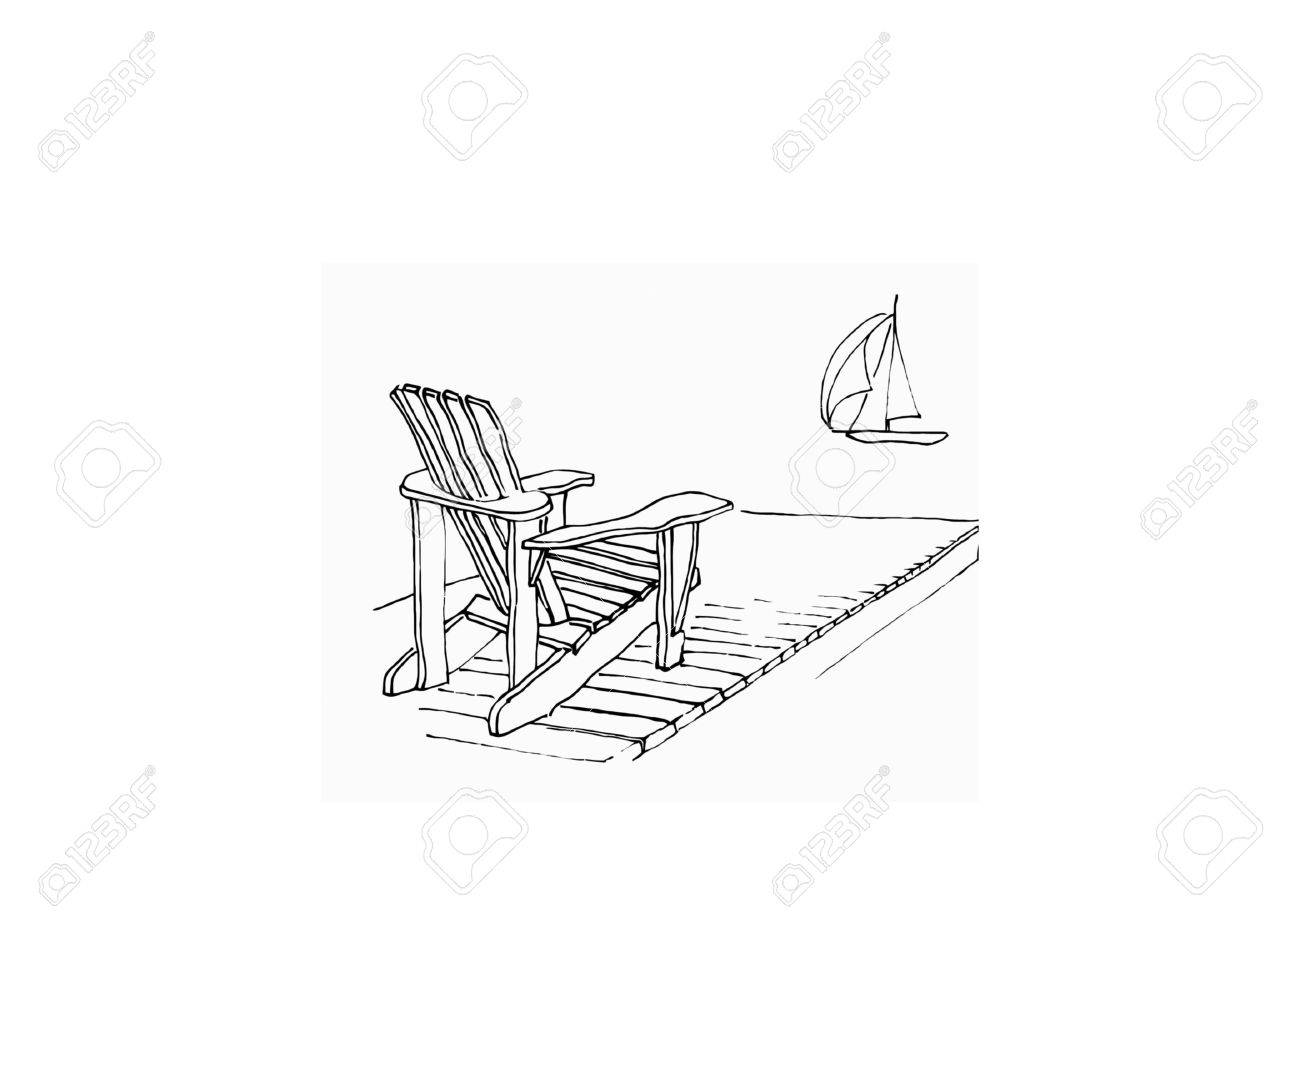 Adirondack chairs drawing - Marker Sketch Of Adirondack Chair On Dock With Sailing Boat Original Artwork By Contributor Stock Photo